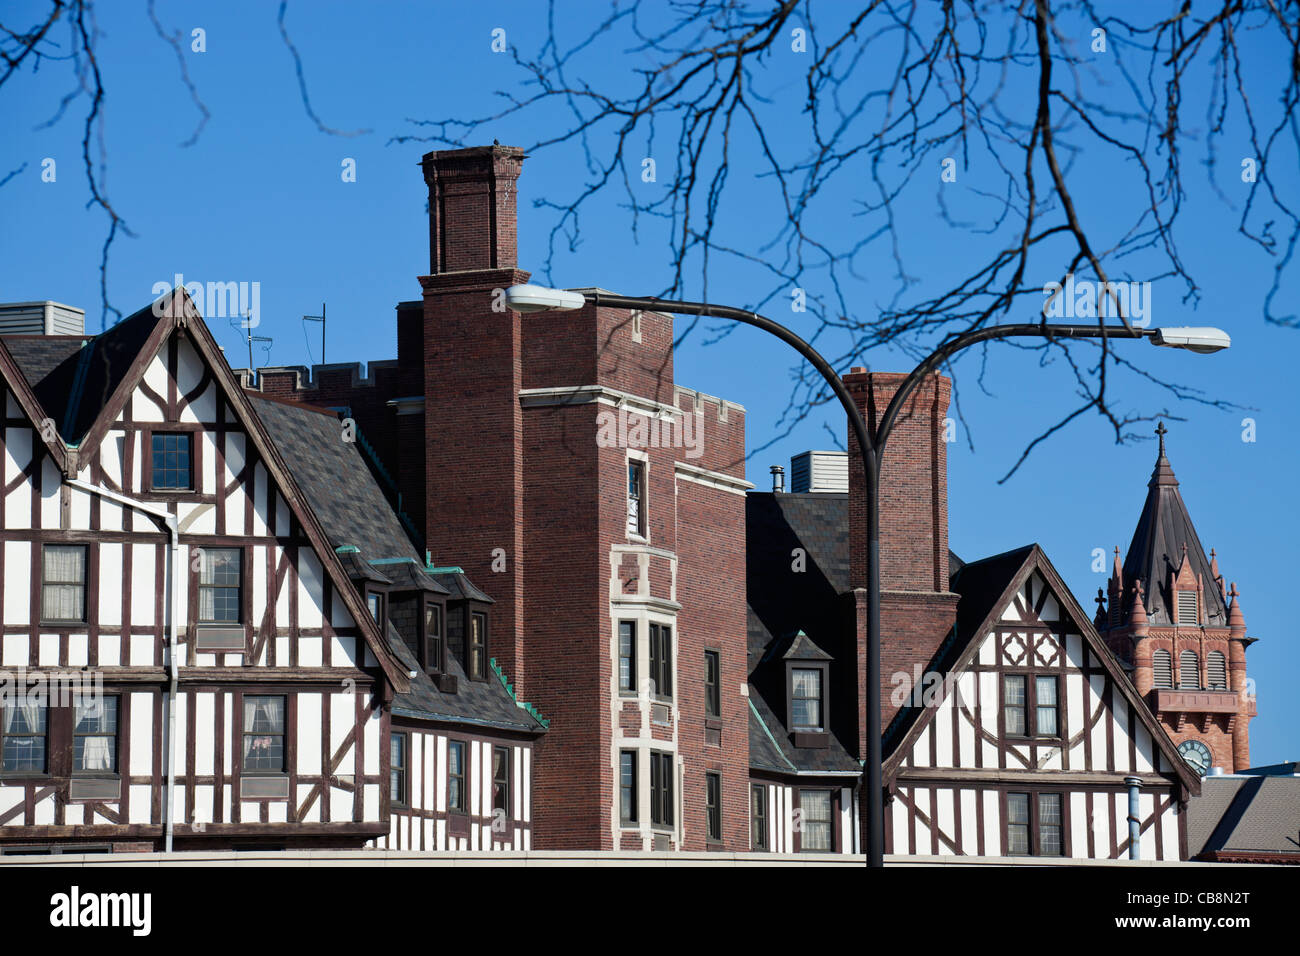 German style architecture in Urbana-Champaign, Illinois - Stock Image